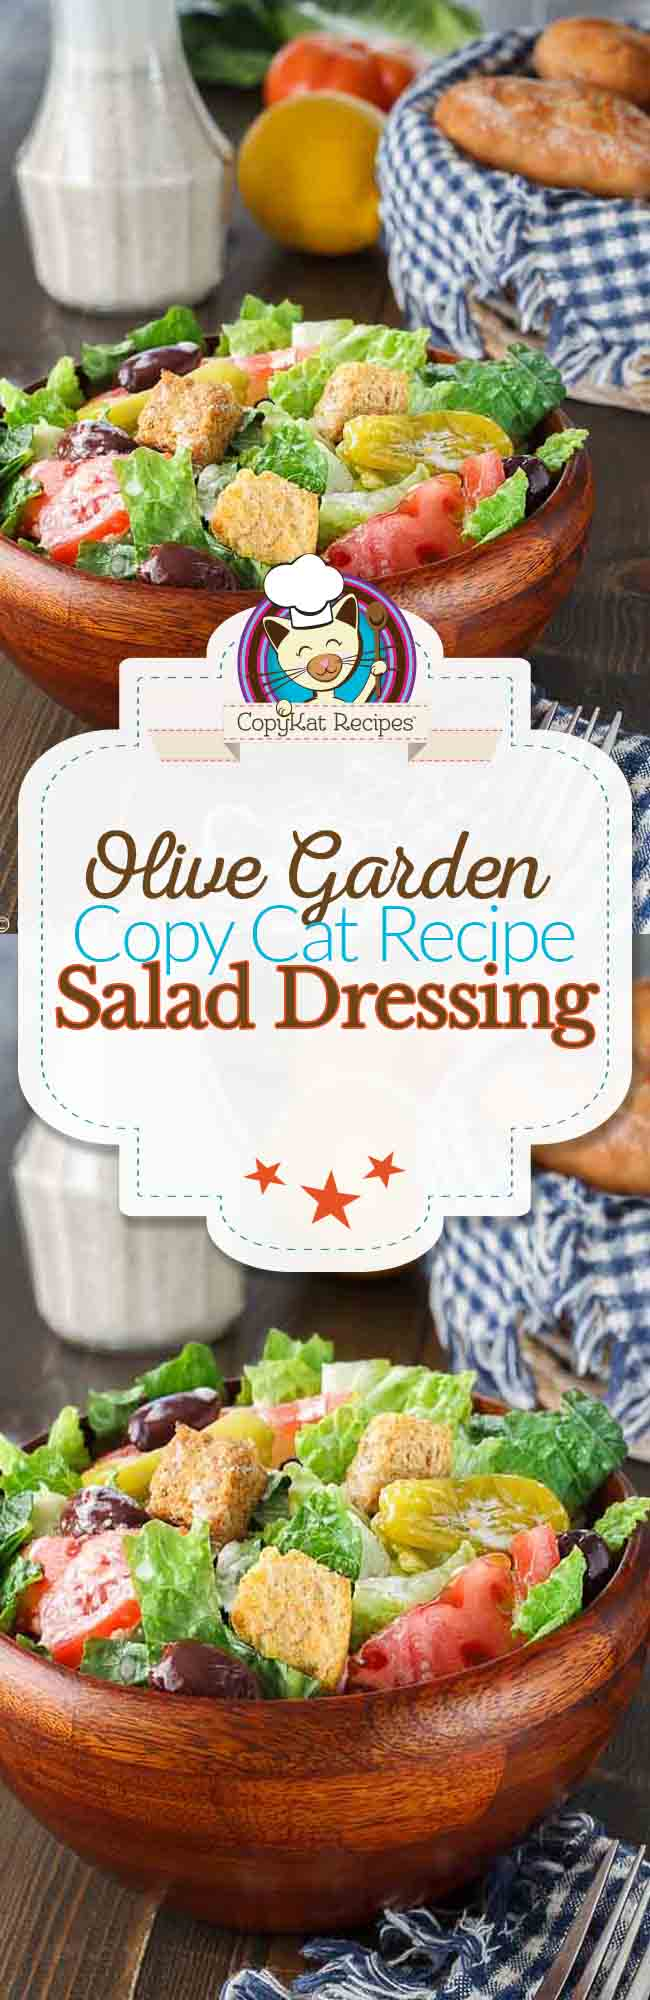 Make The Olive Garden Salad Dressing At Home It Is So Easy